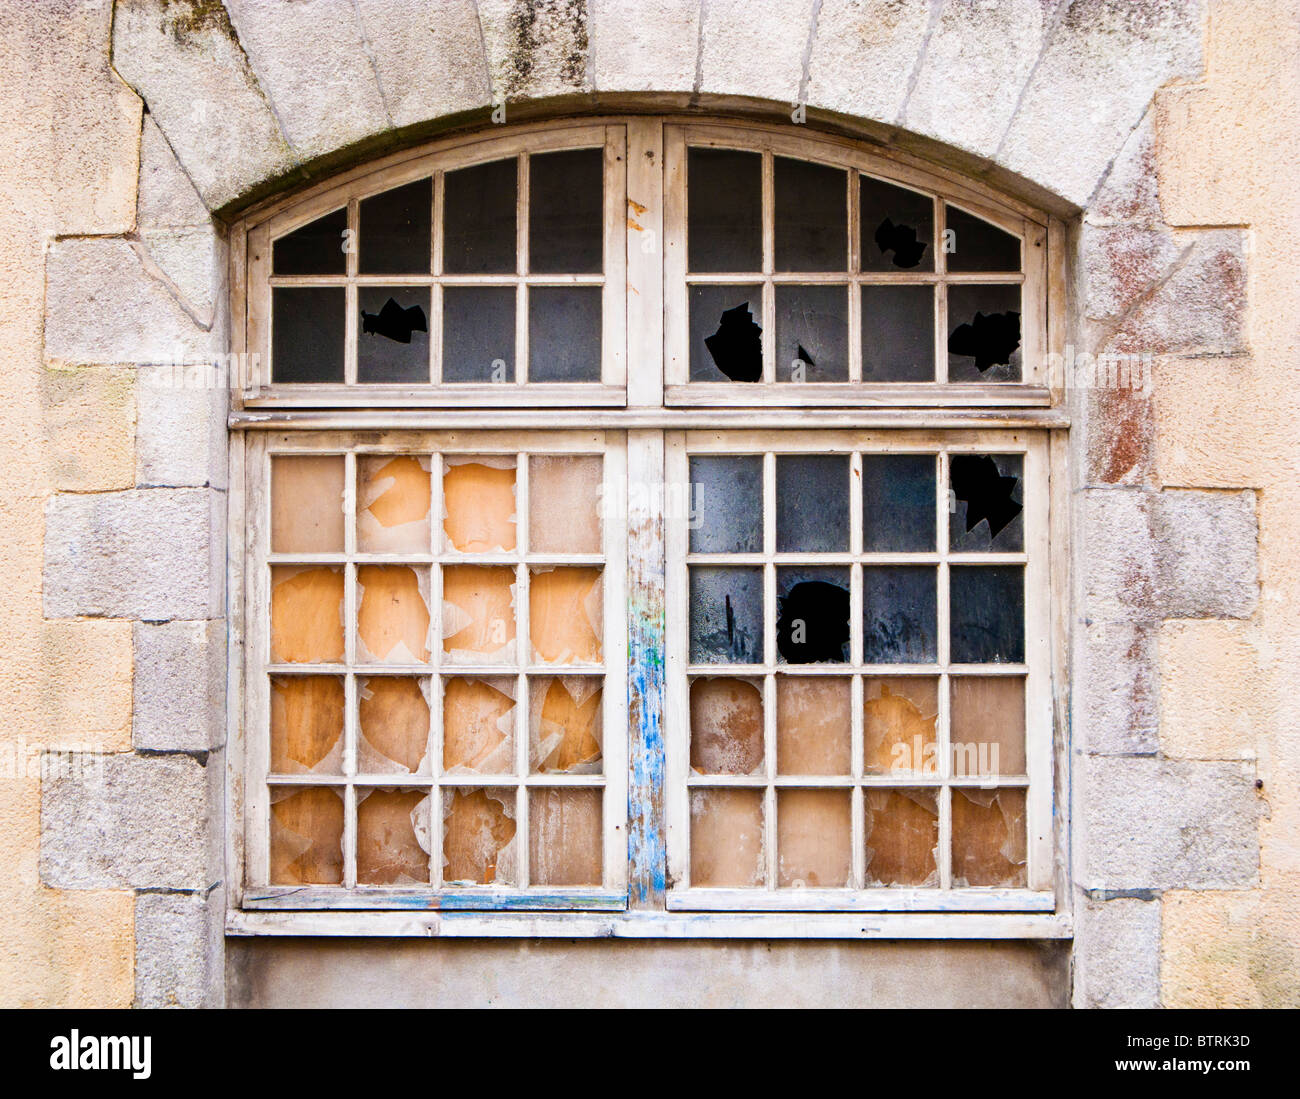 fen tre en arc bris avec carreaux de verre banque d 39 images photo stock 32482001 alamy